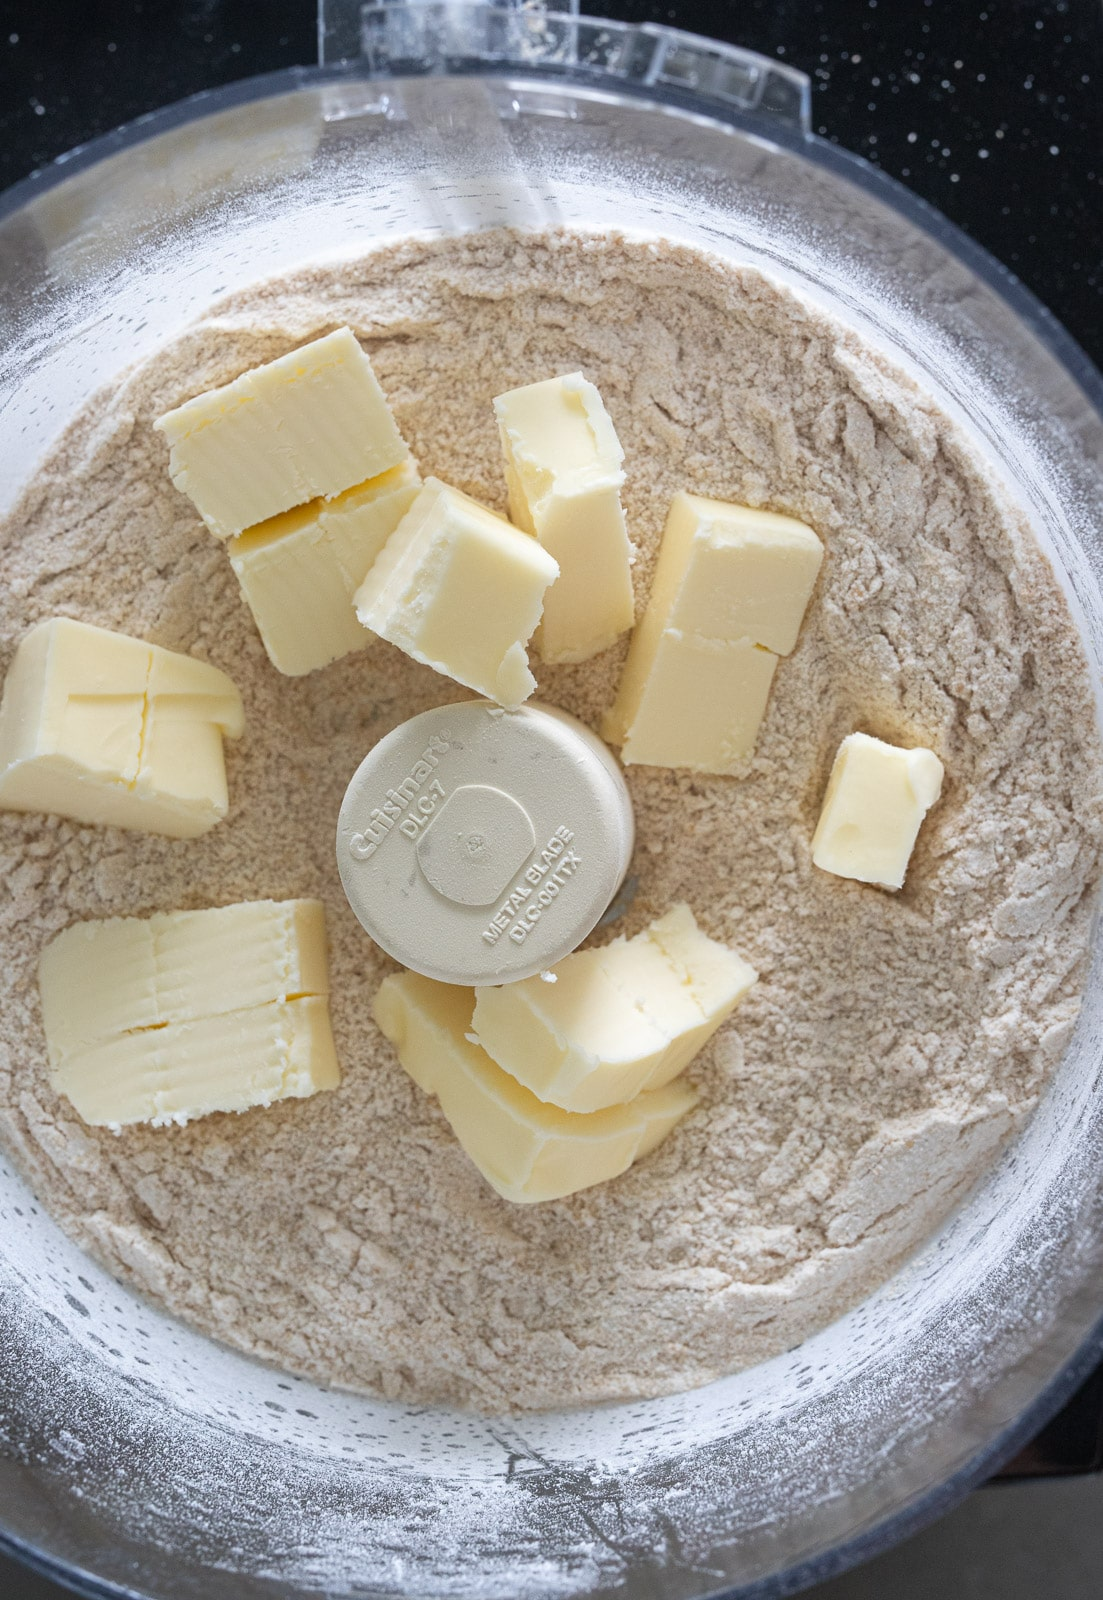 Butter in a food processor for making biscuits.